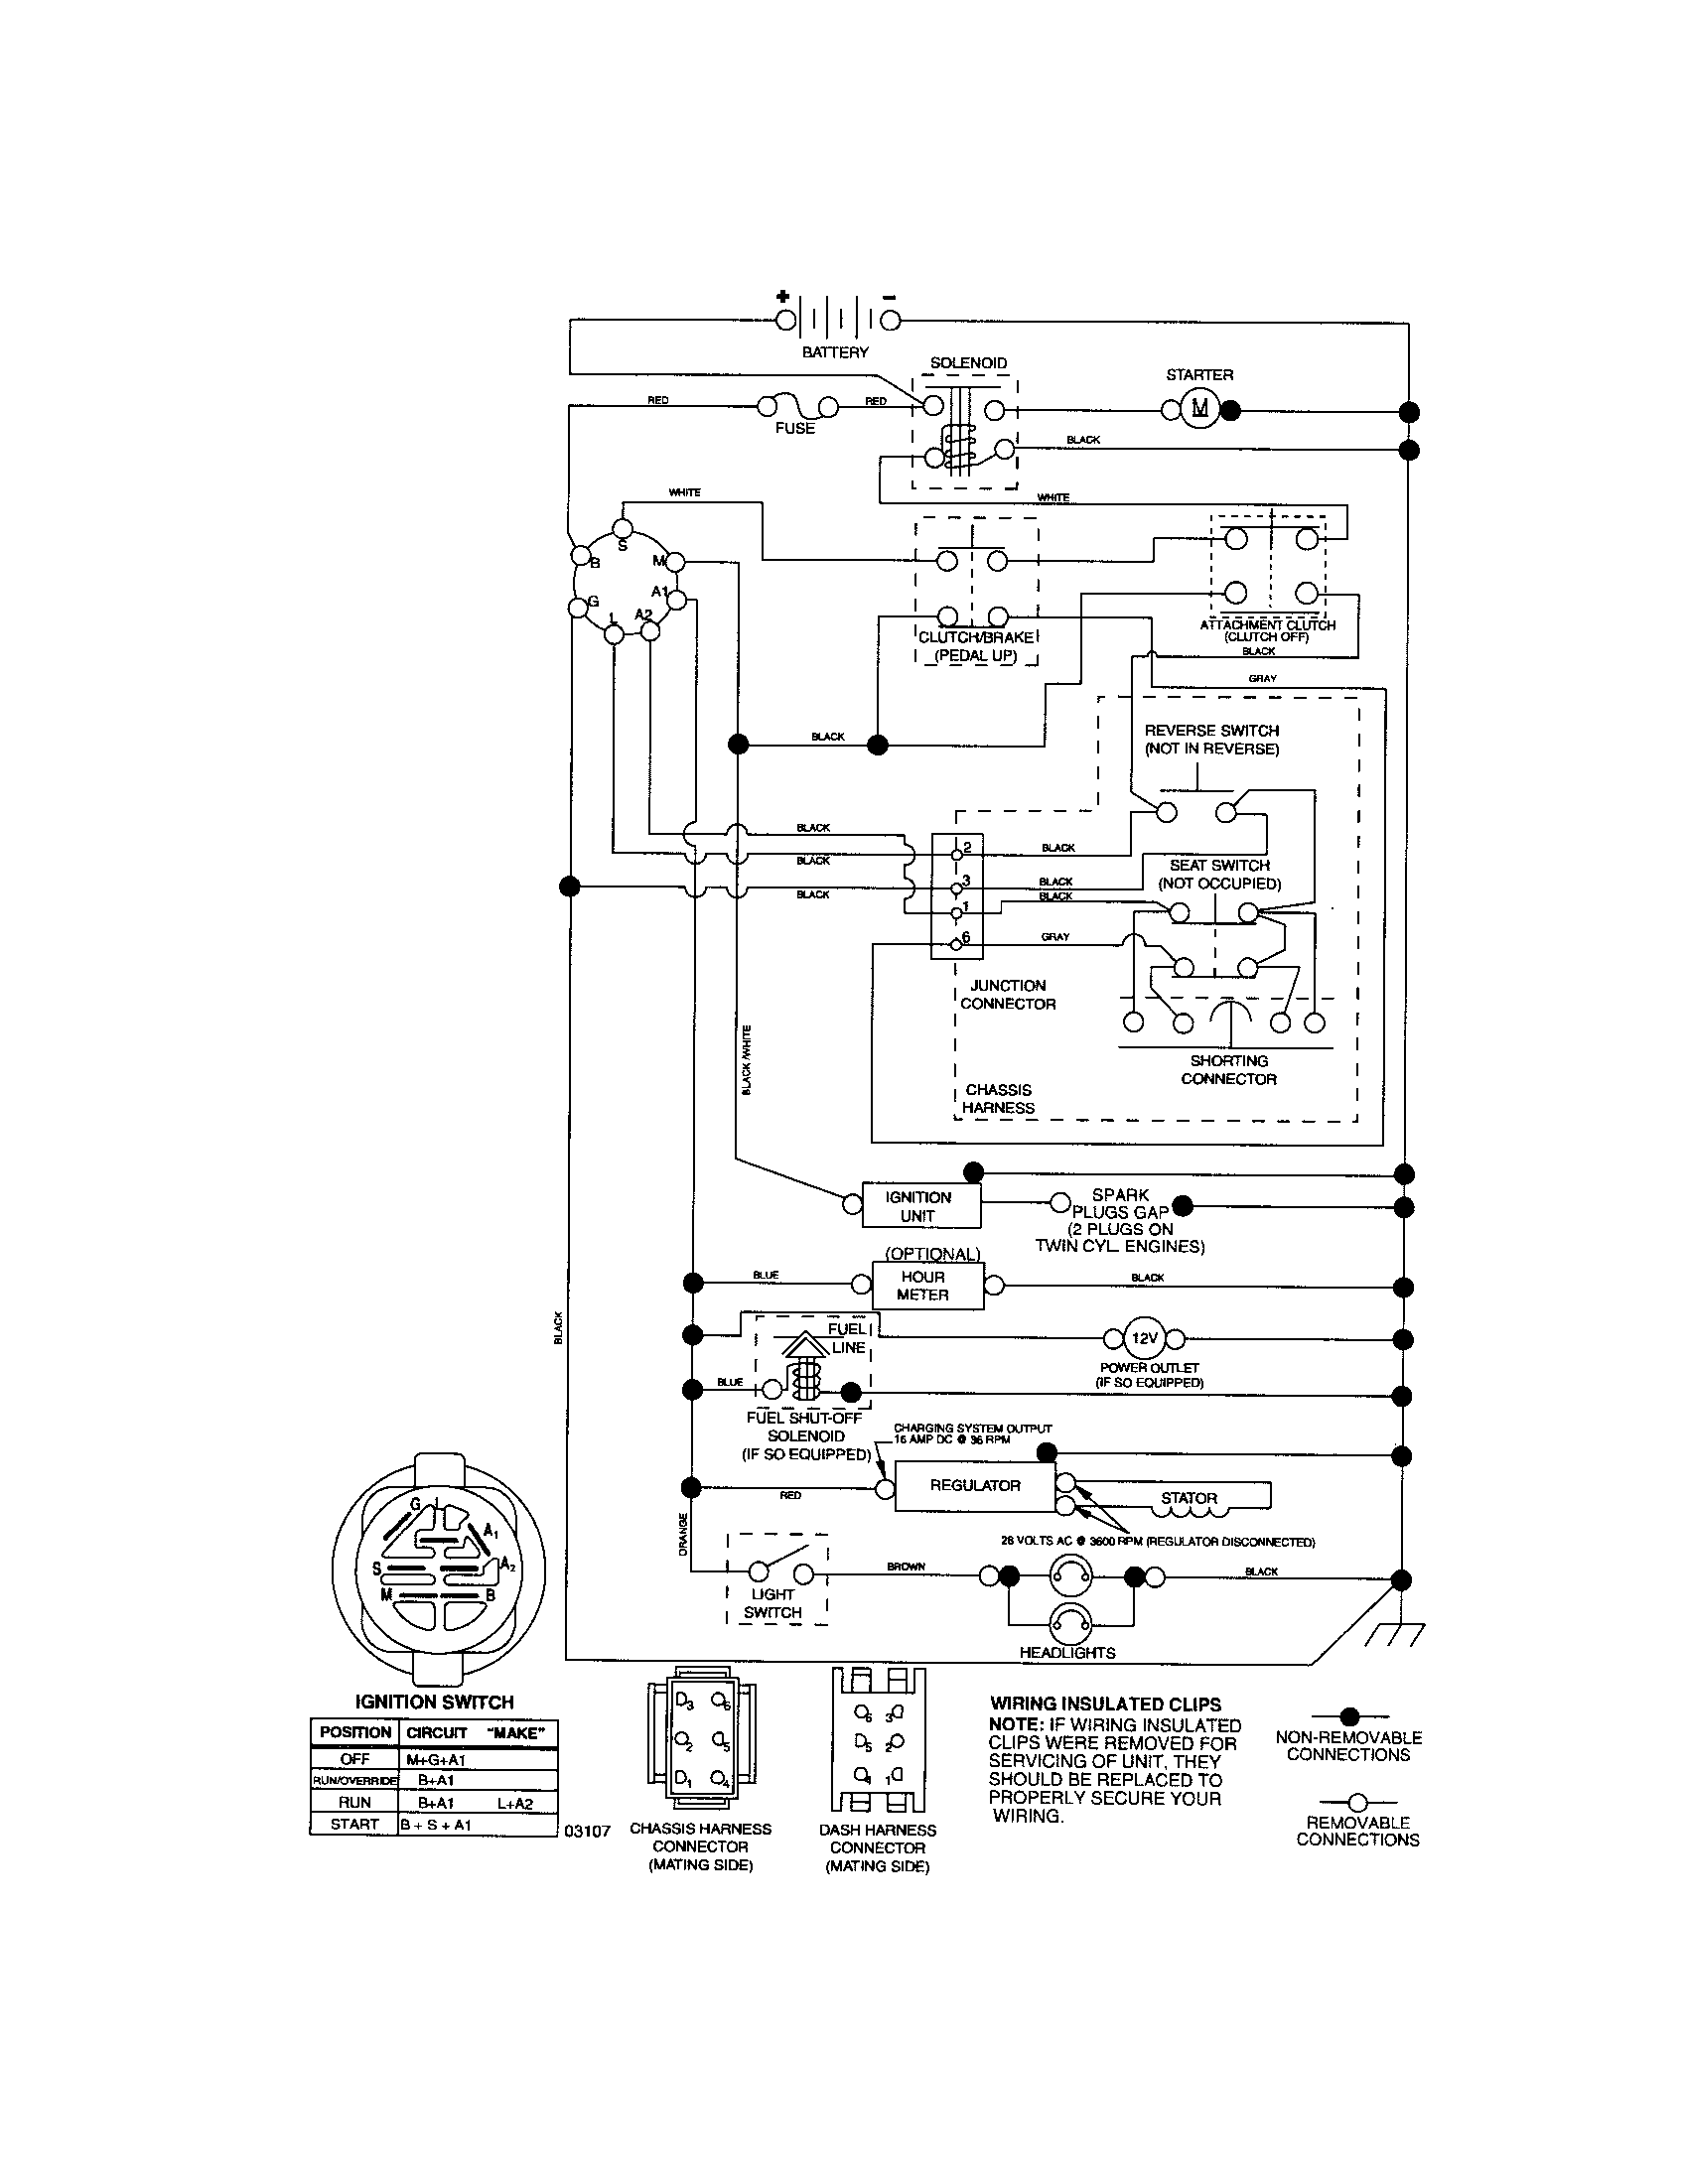 6af5f1447fd13c8443376822ddc1e105 craftsman riding mower electrical diagram wiring diagram Diagram Murray Riding Mower Manual at webbmarketing.co